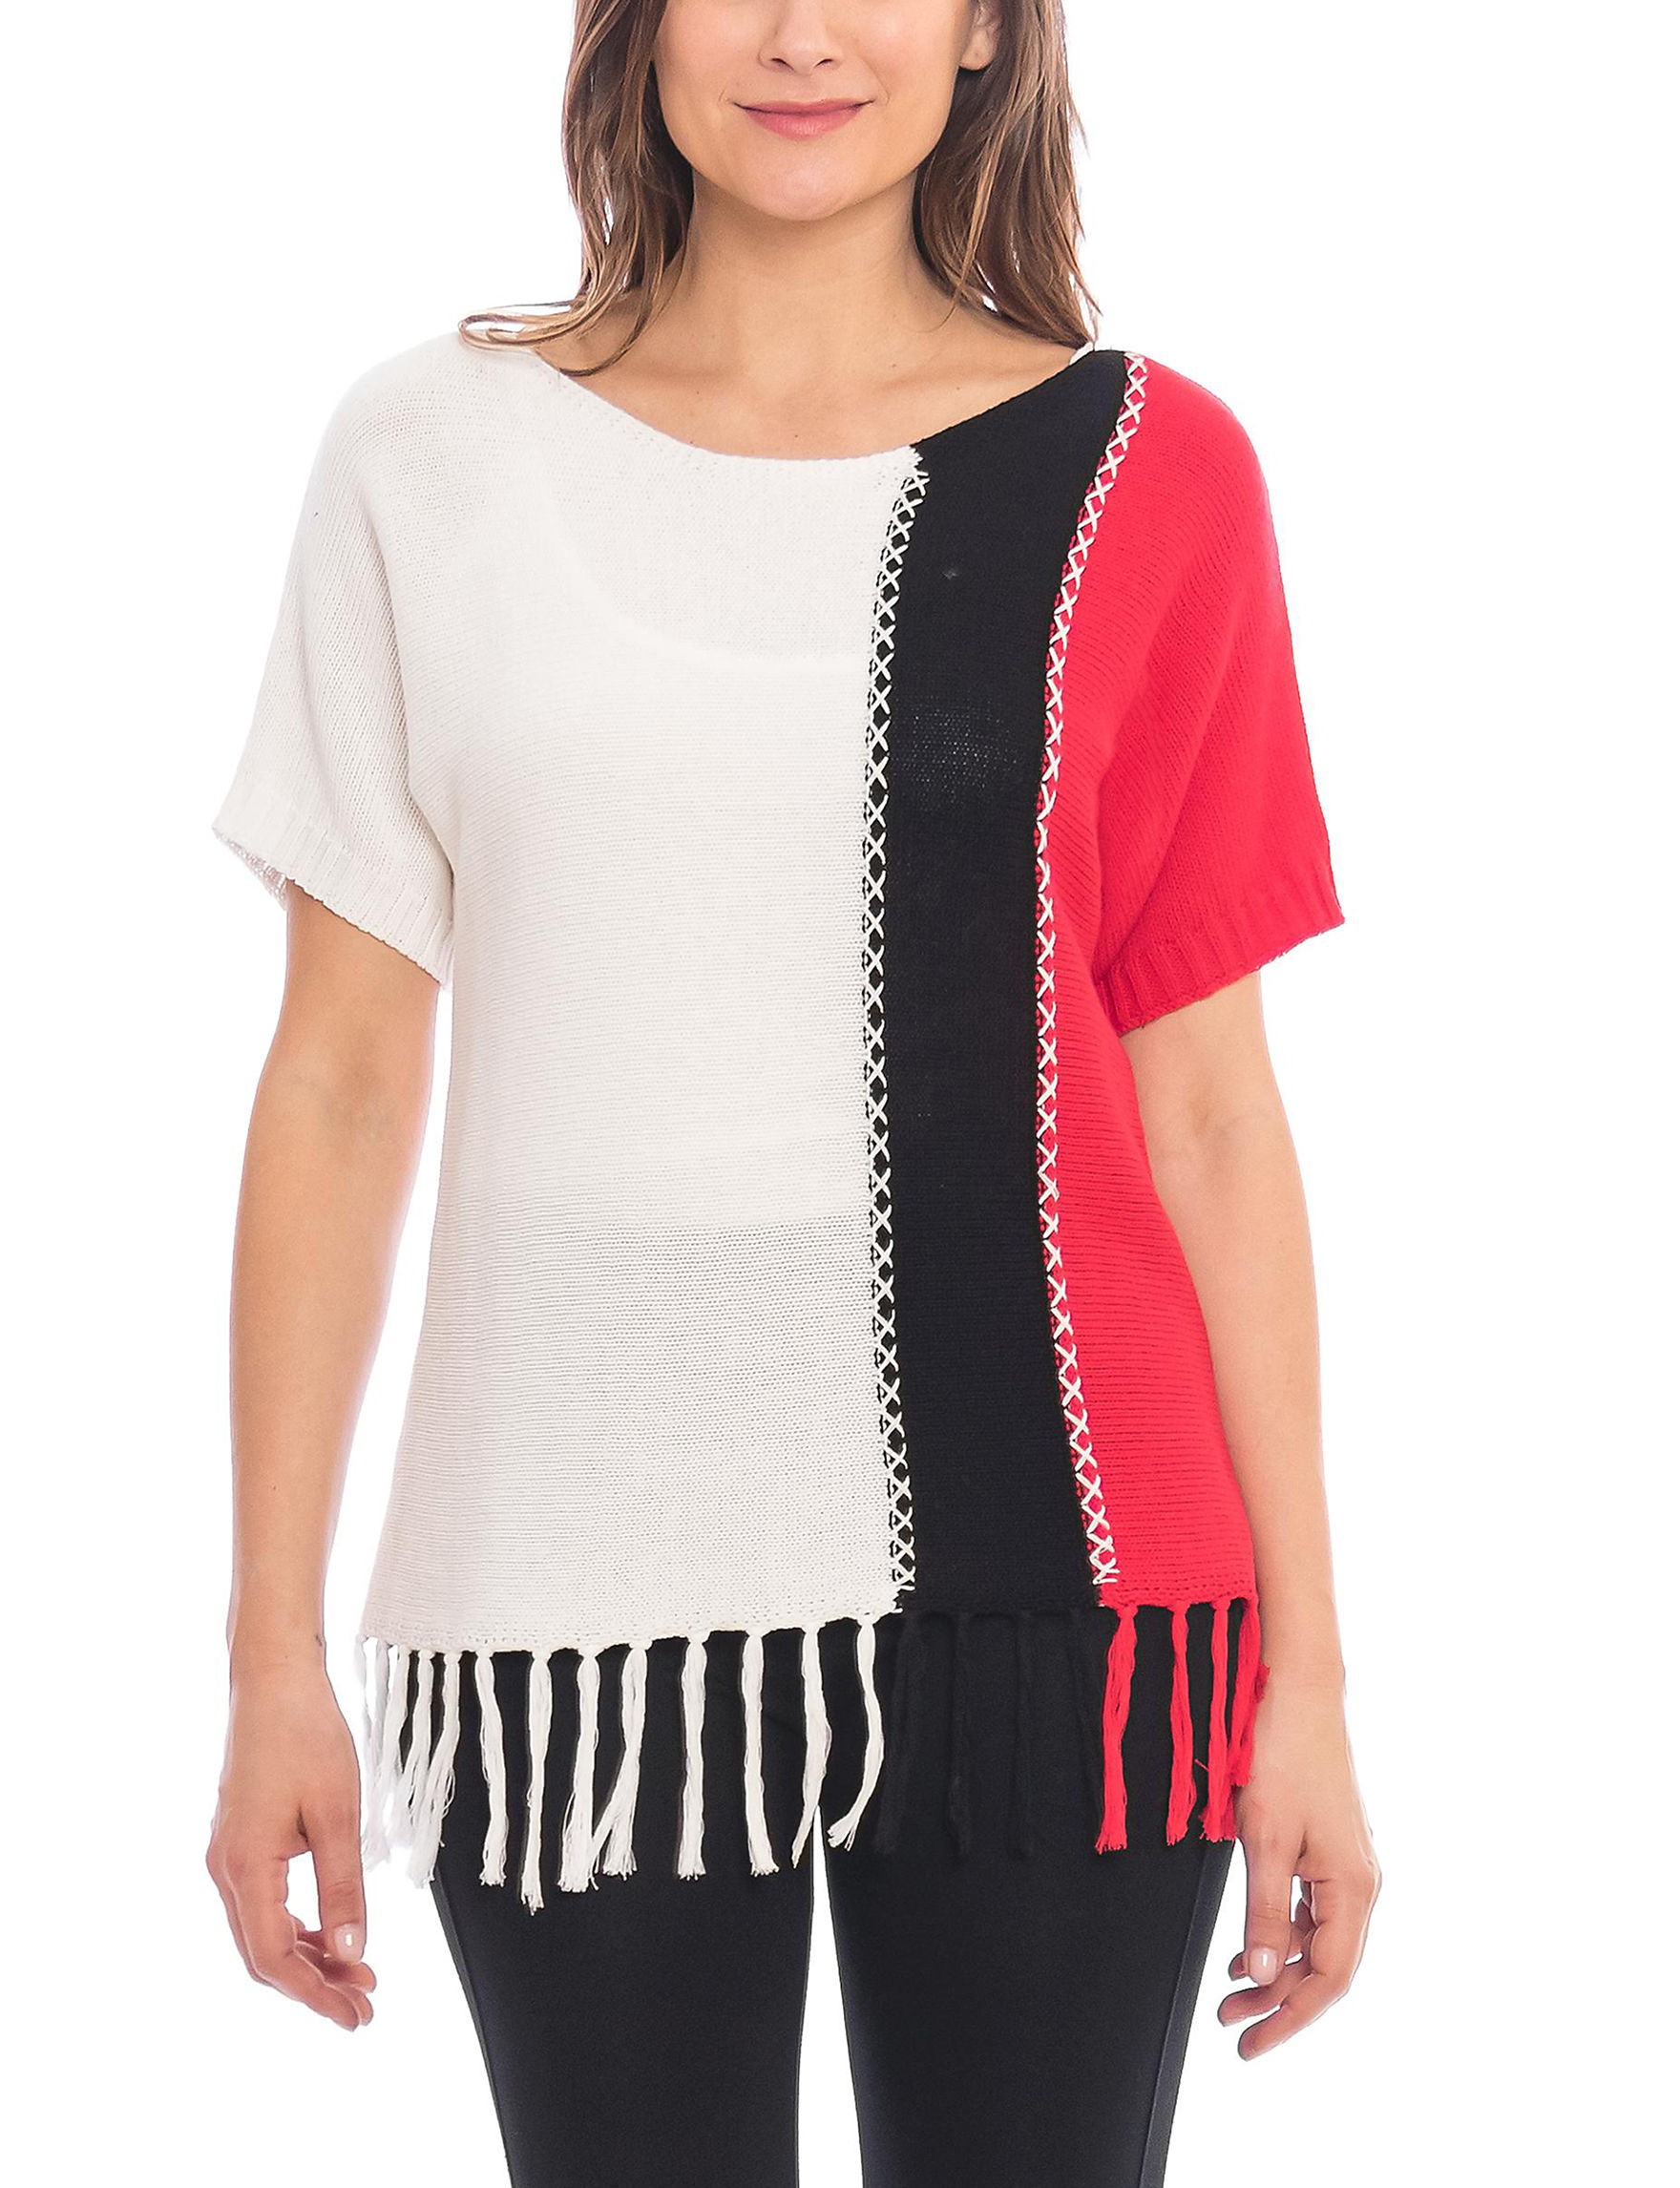 Skyes The Limit White Pull-overs Shirts & Blouses